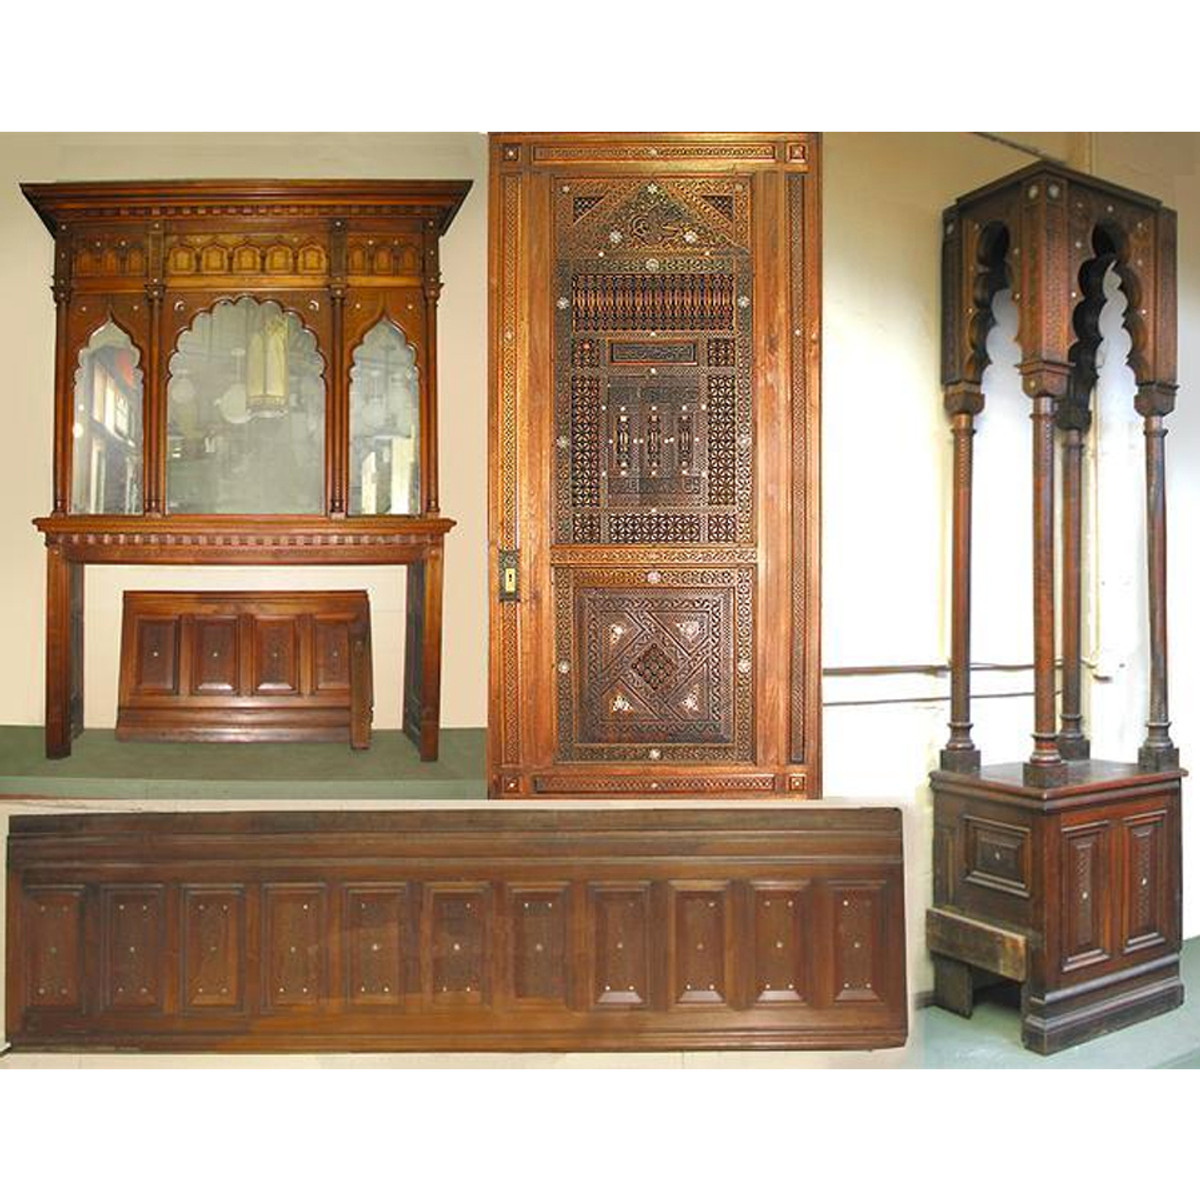 700998 - Antique Moorish Room with Full Mantel, Pocket Doors, Corner Display and more